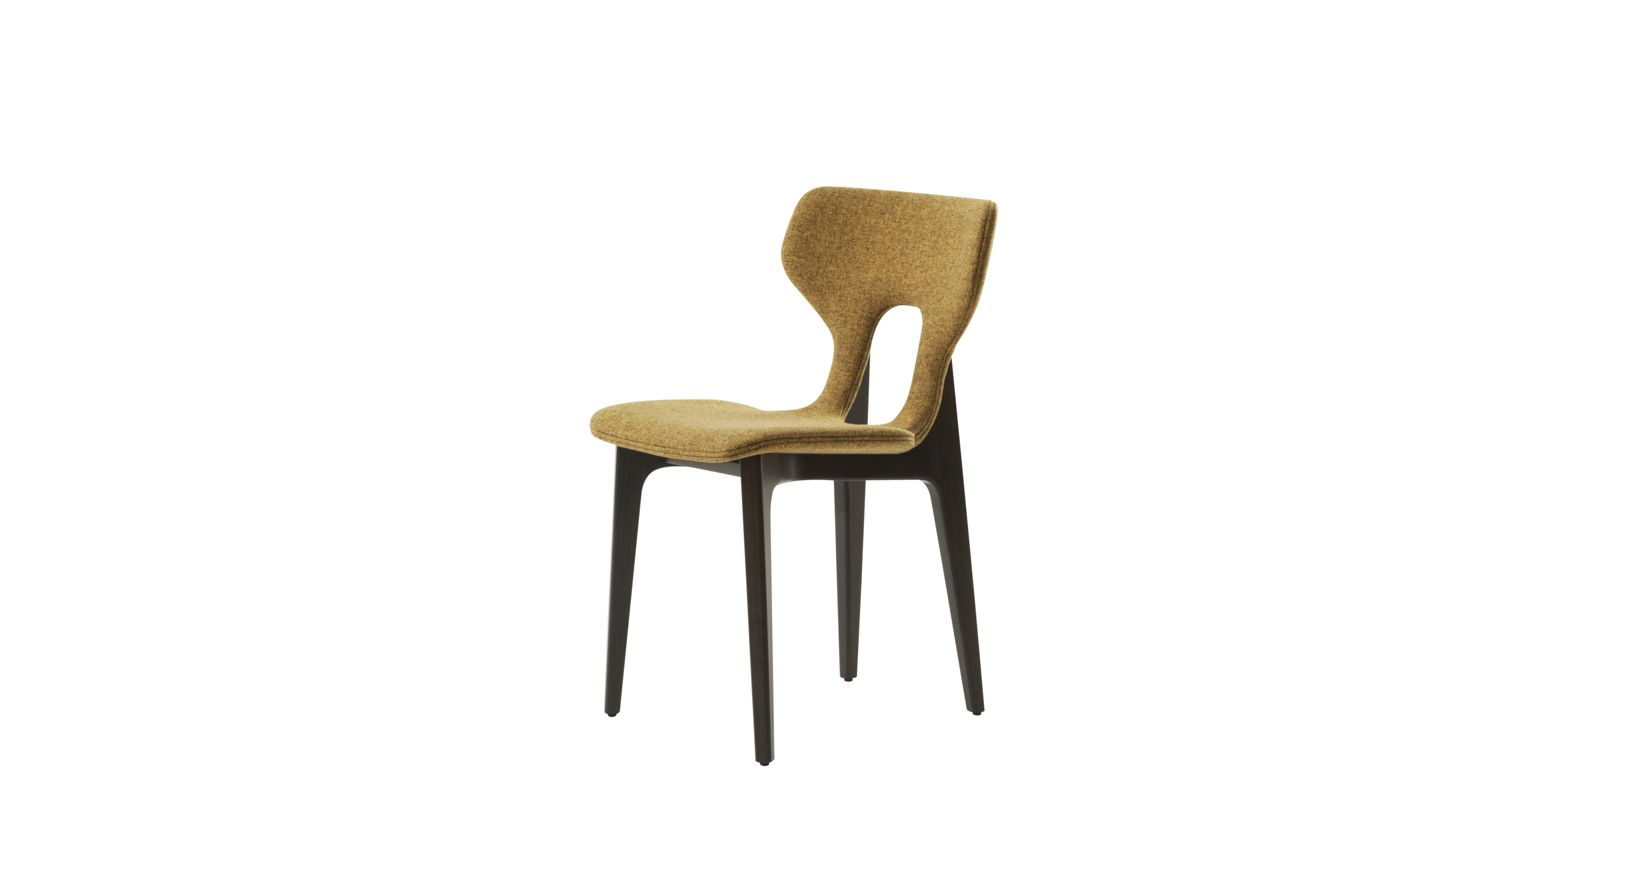 Roche bobois products our selection of design furniture - Chaises roche et bobois ...